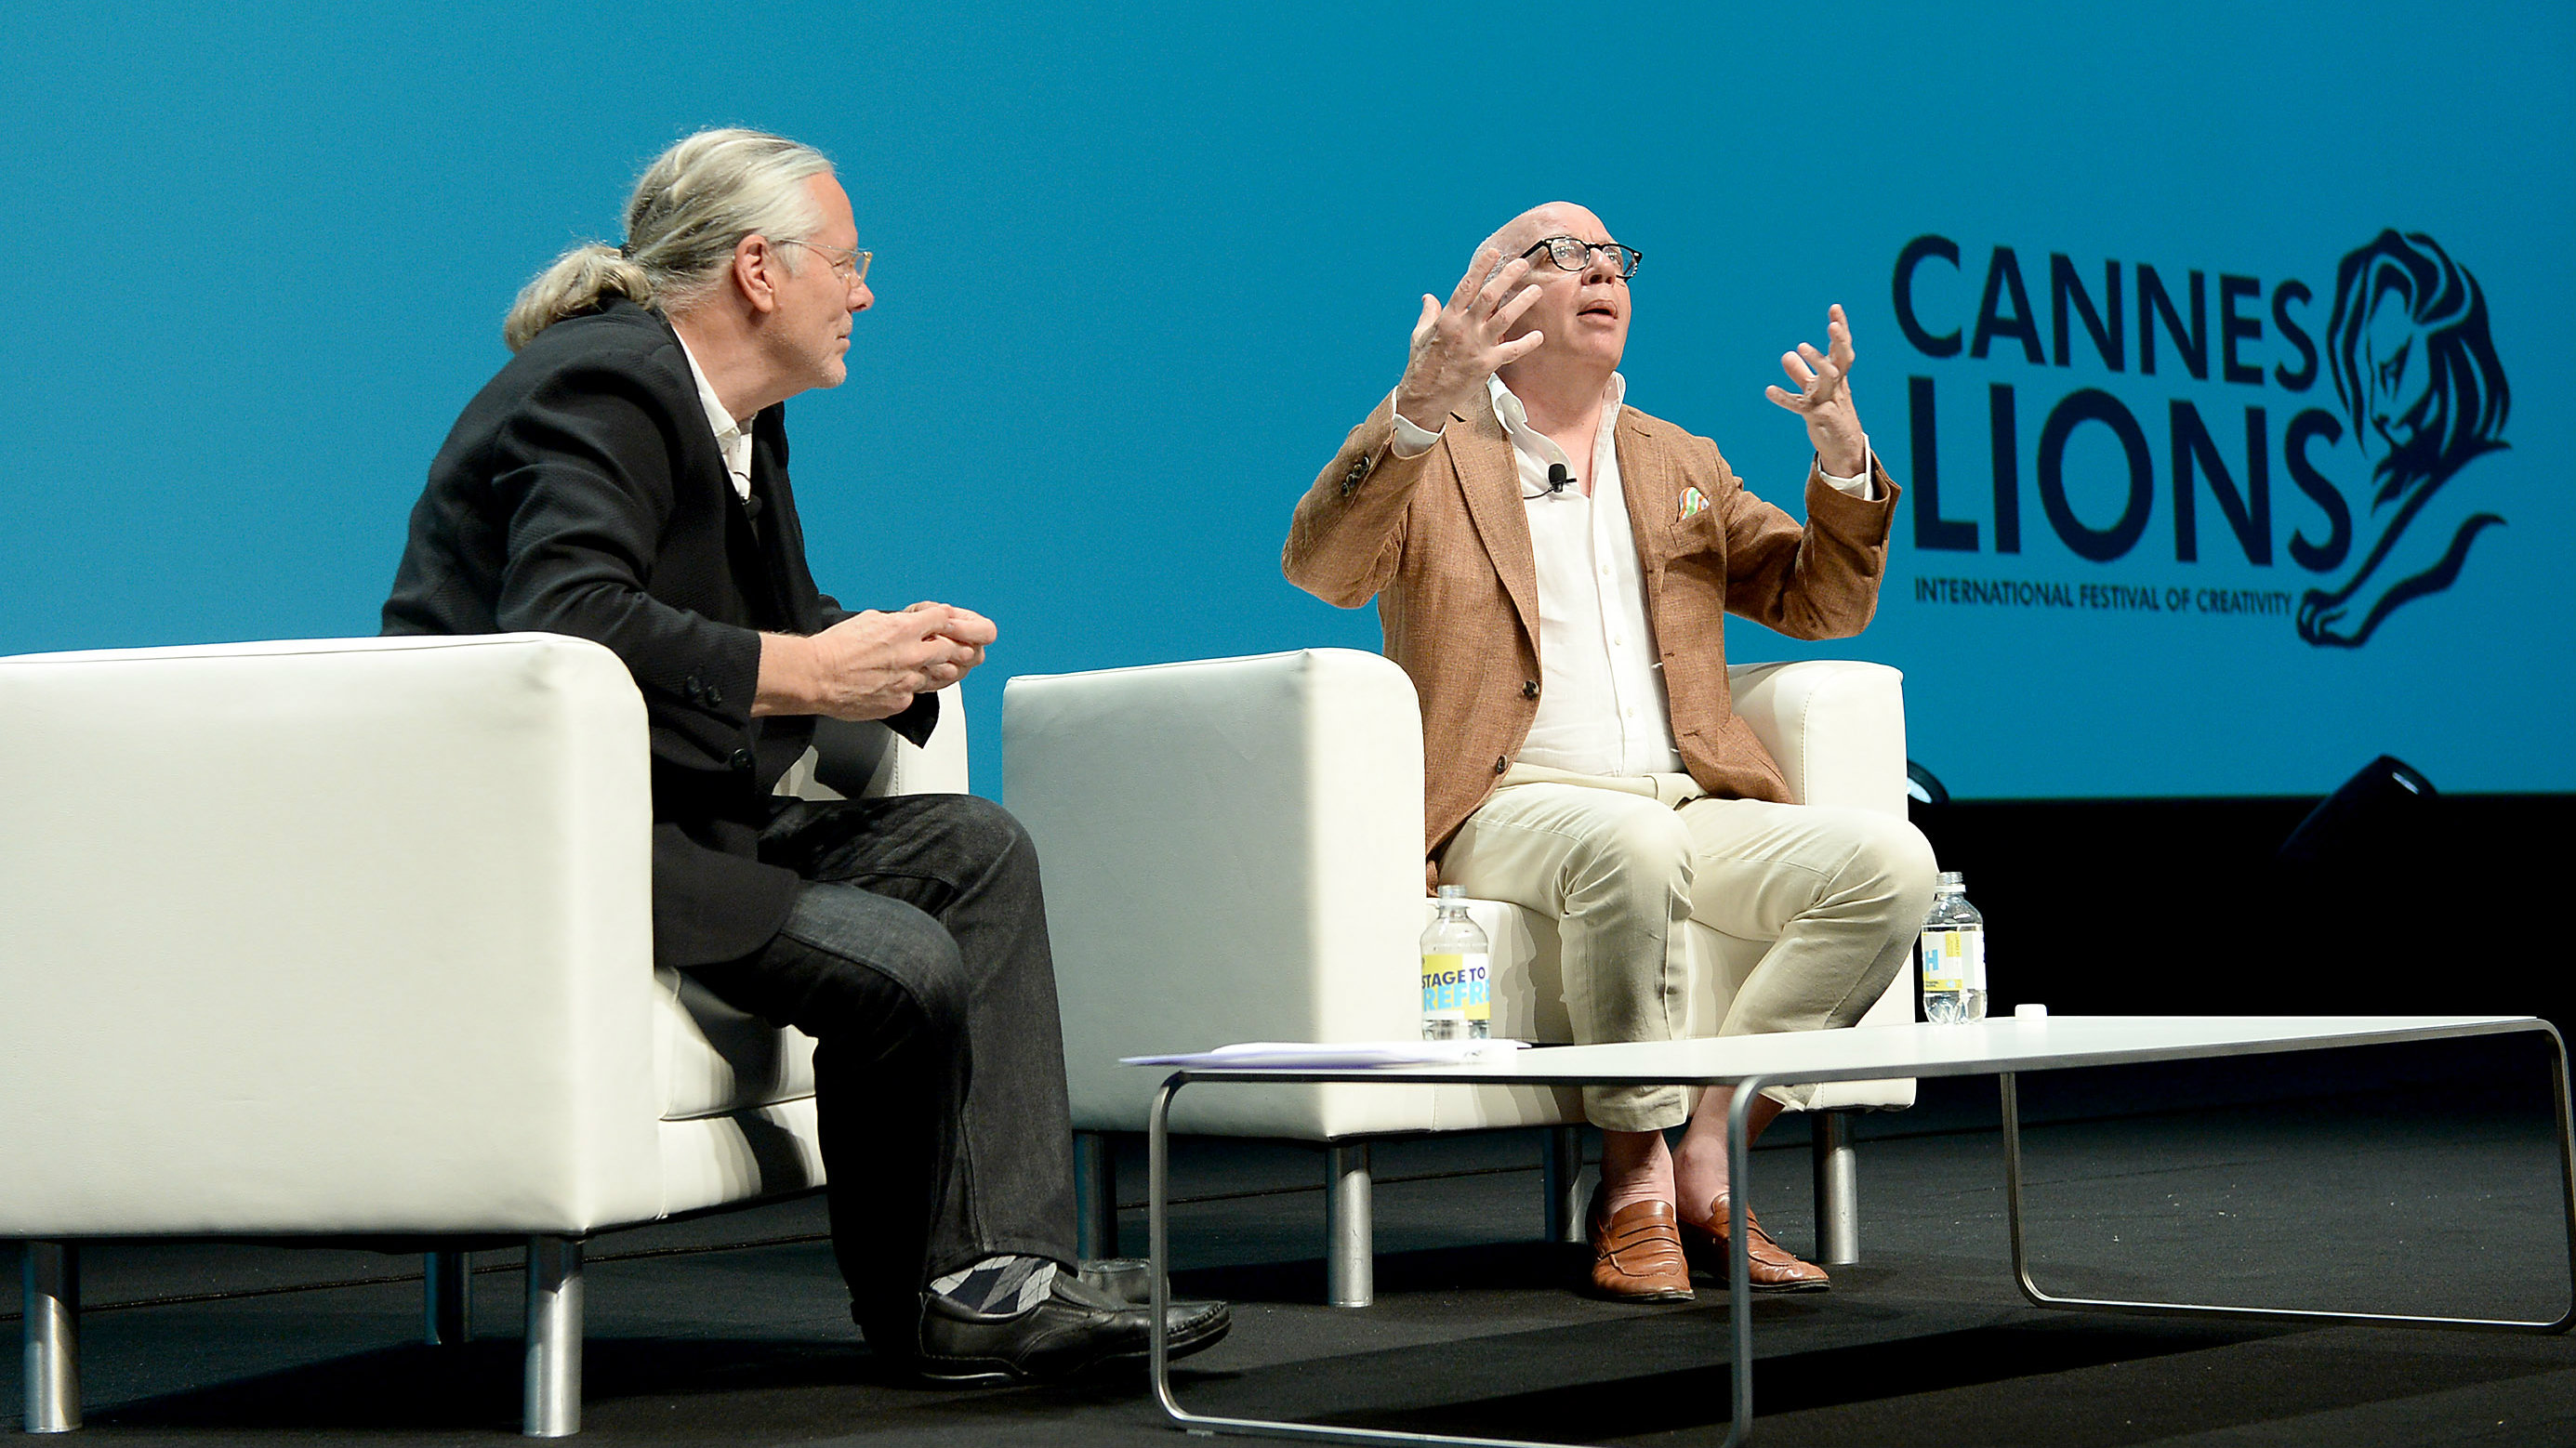 Michael Wolff onstage at the Cannes Lions 2018